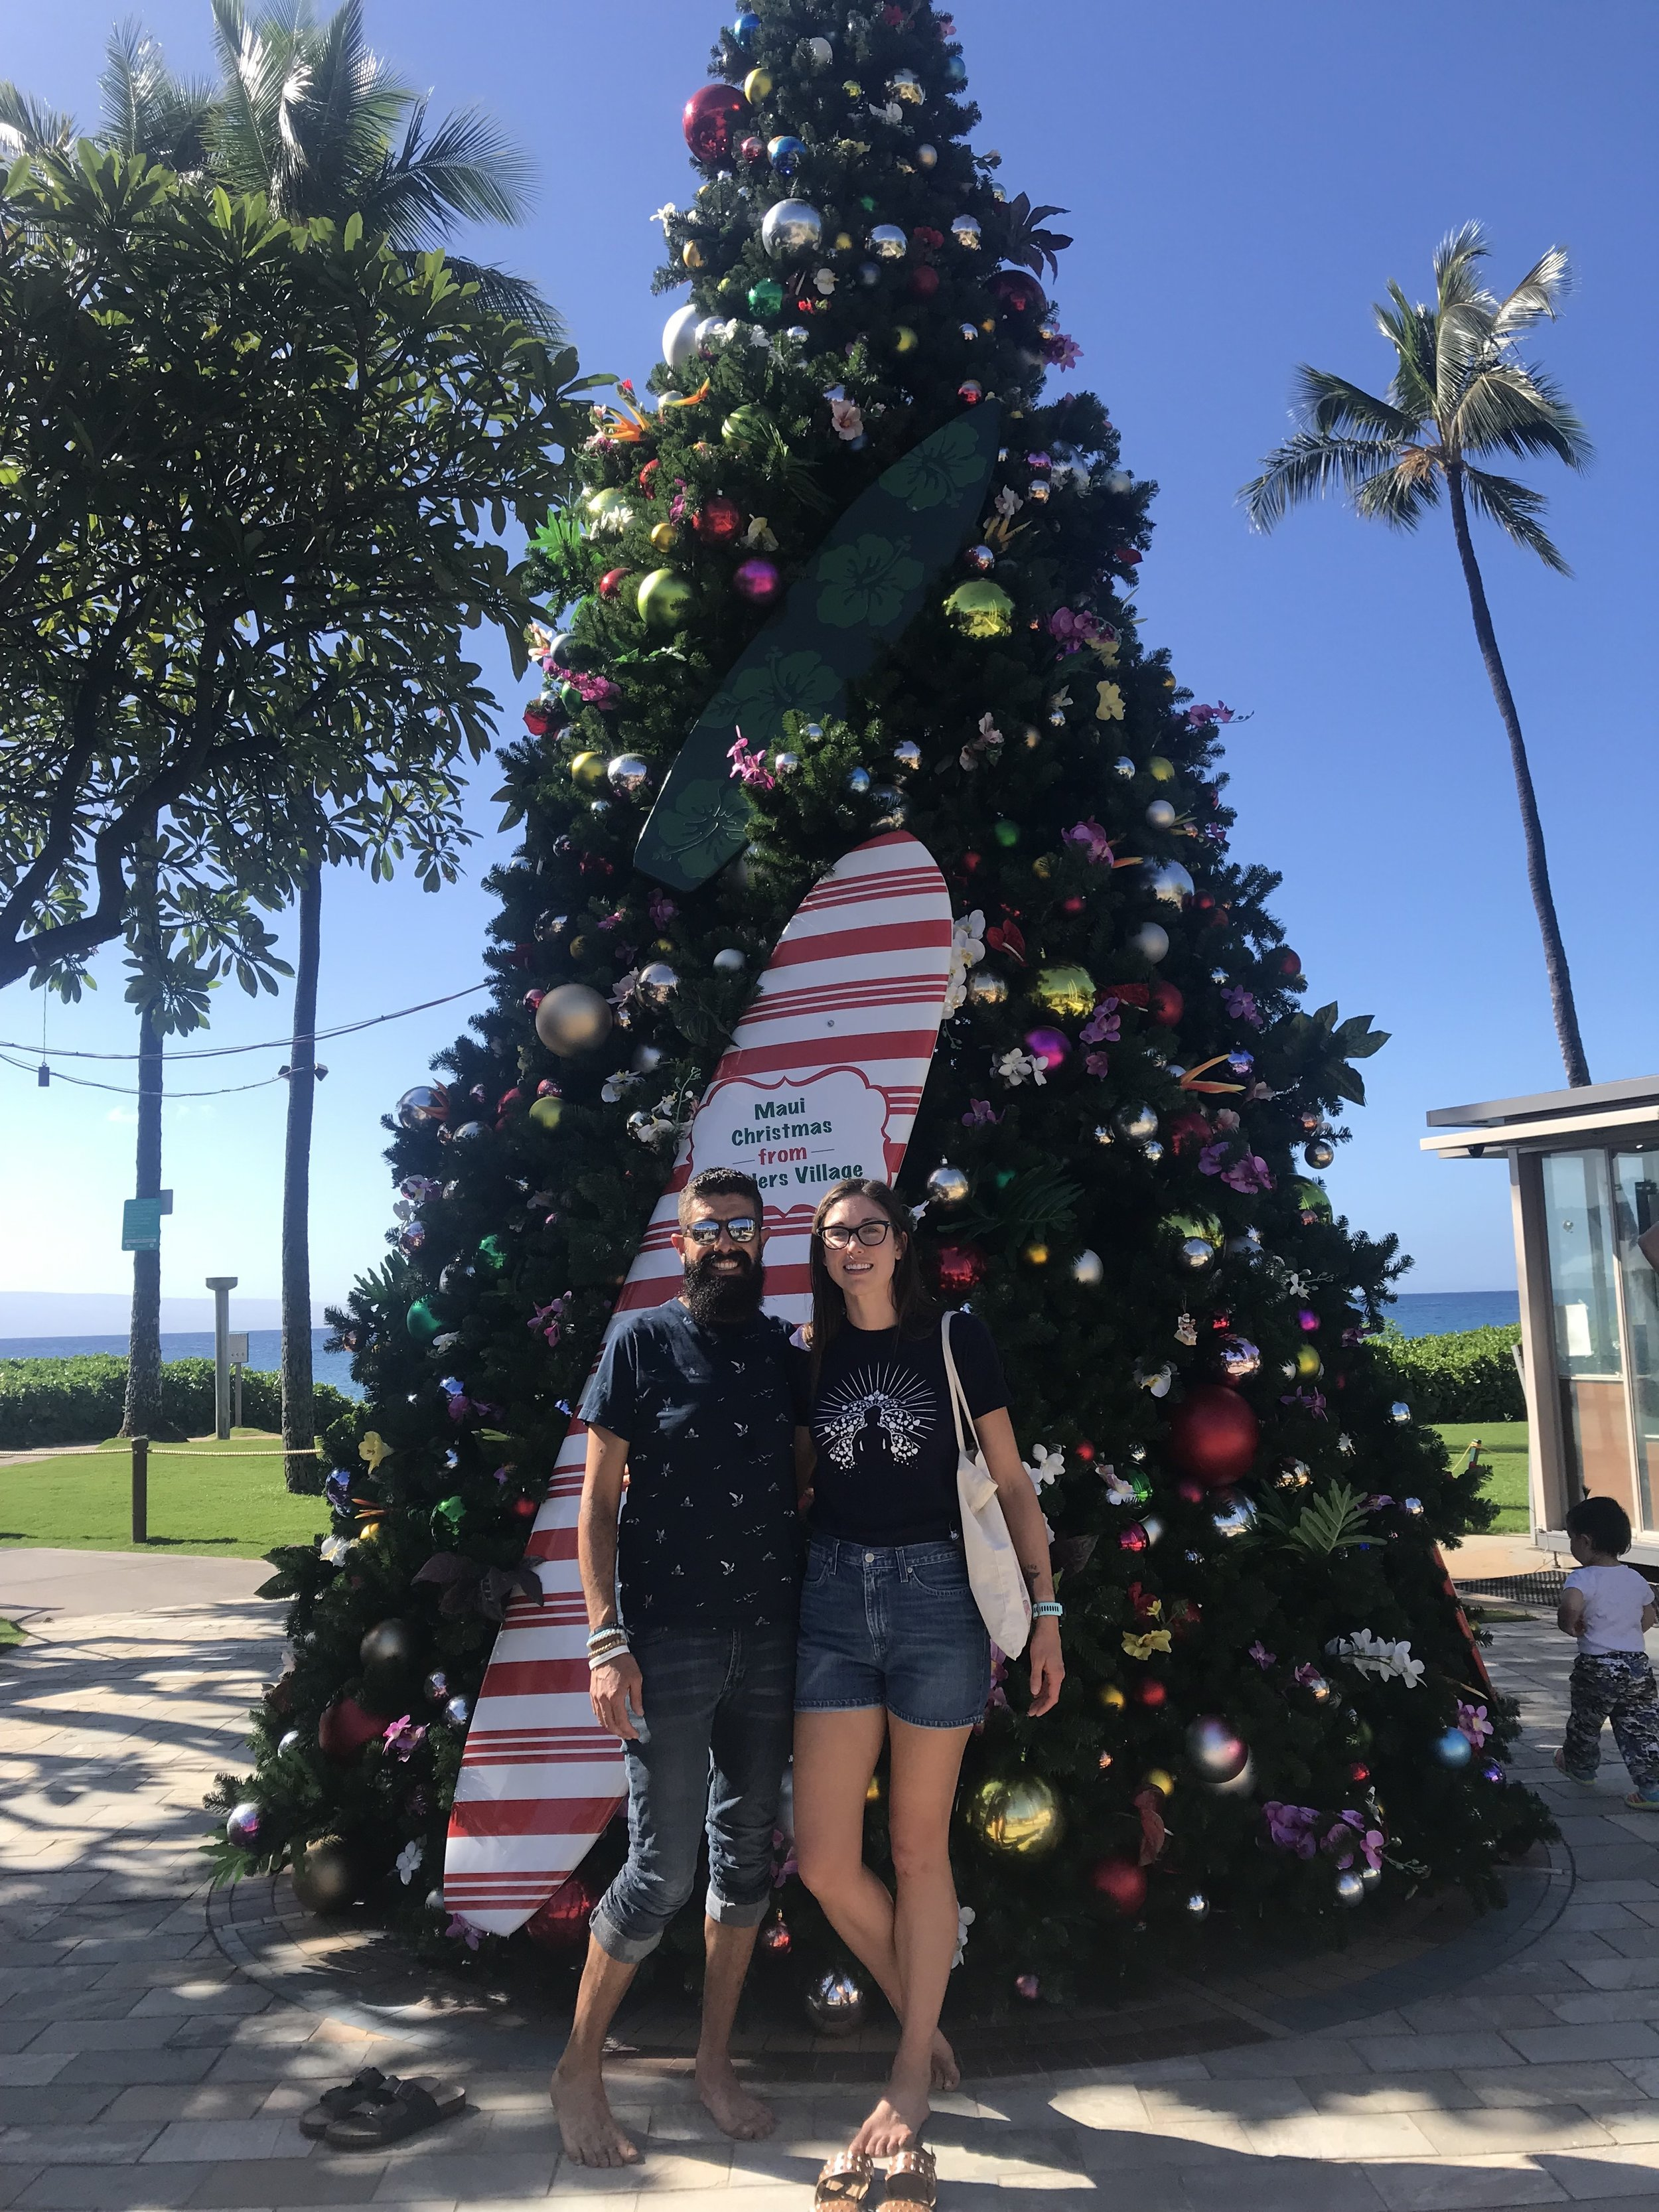 Christmas at the mall by the beach